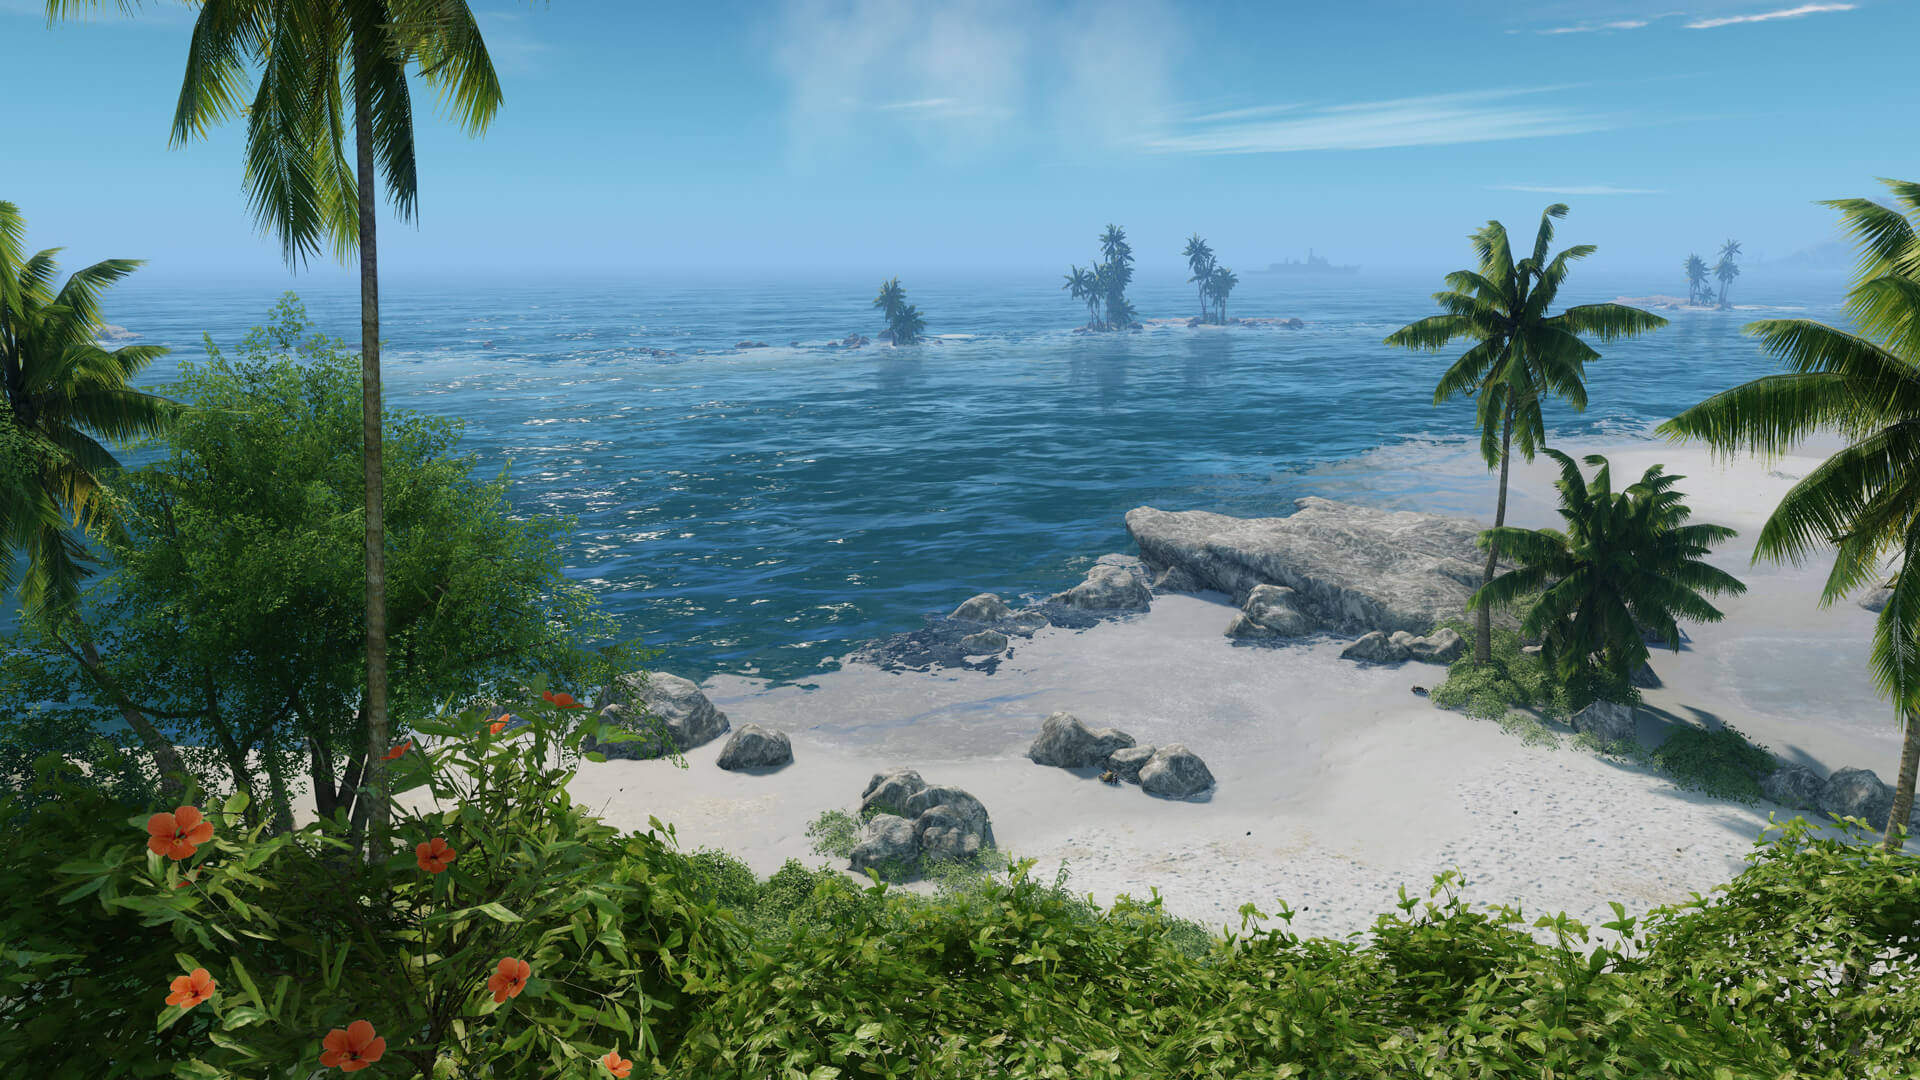 Crysis Remastered PC requirements minimum recommended specs